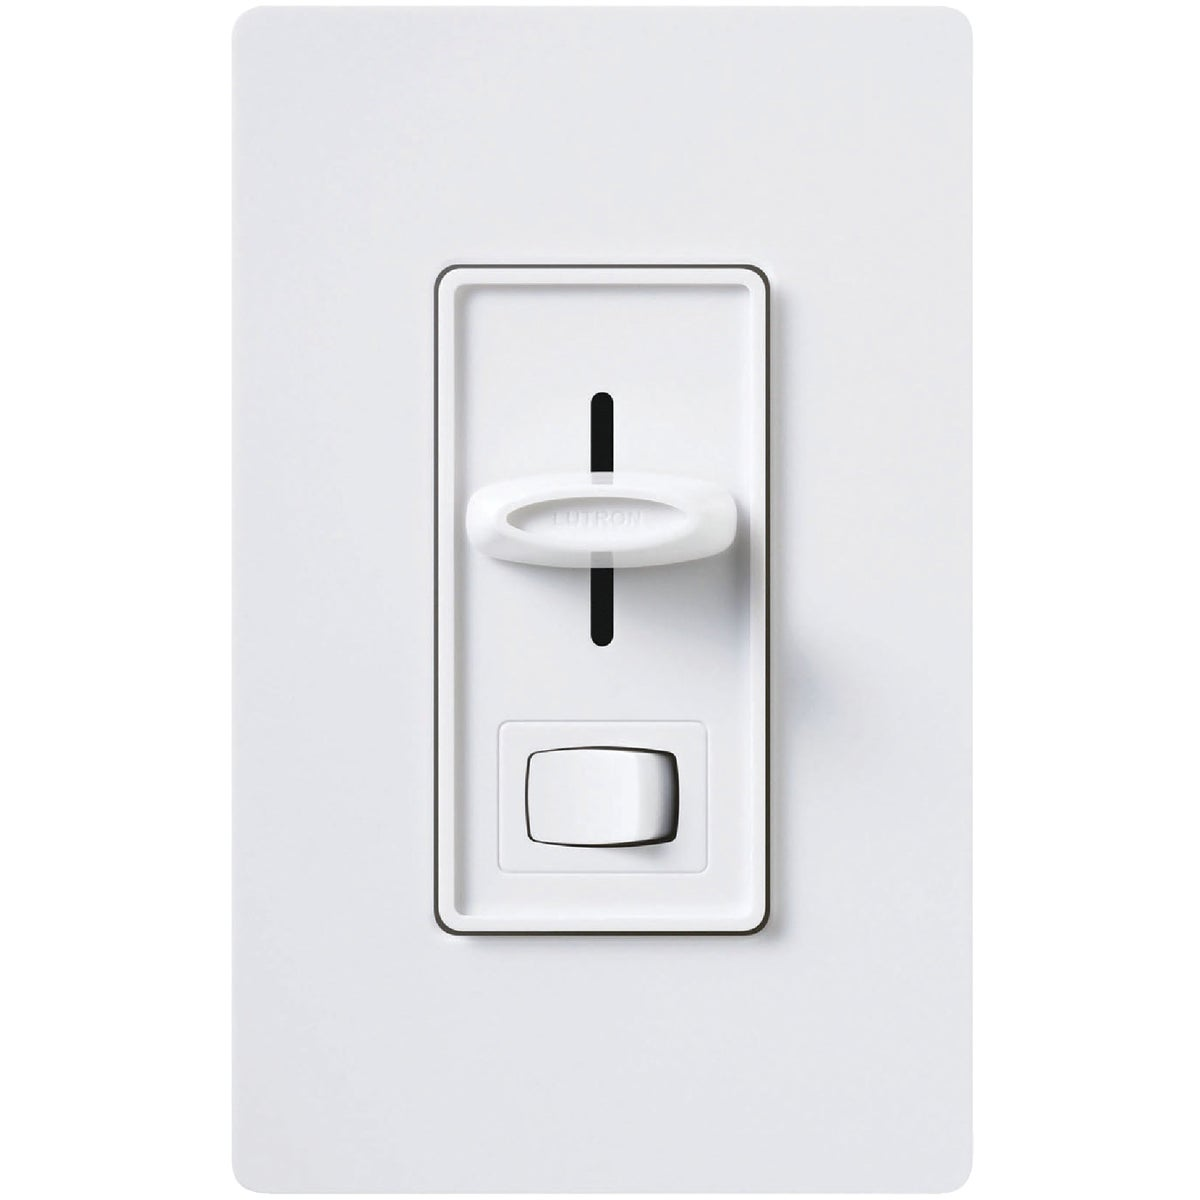 WH CFL/LED DIMMER - SCL-153PH-WH by Lutron Elect Co Inc